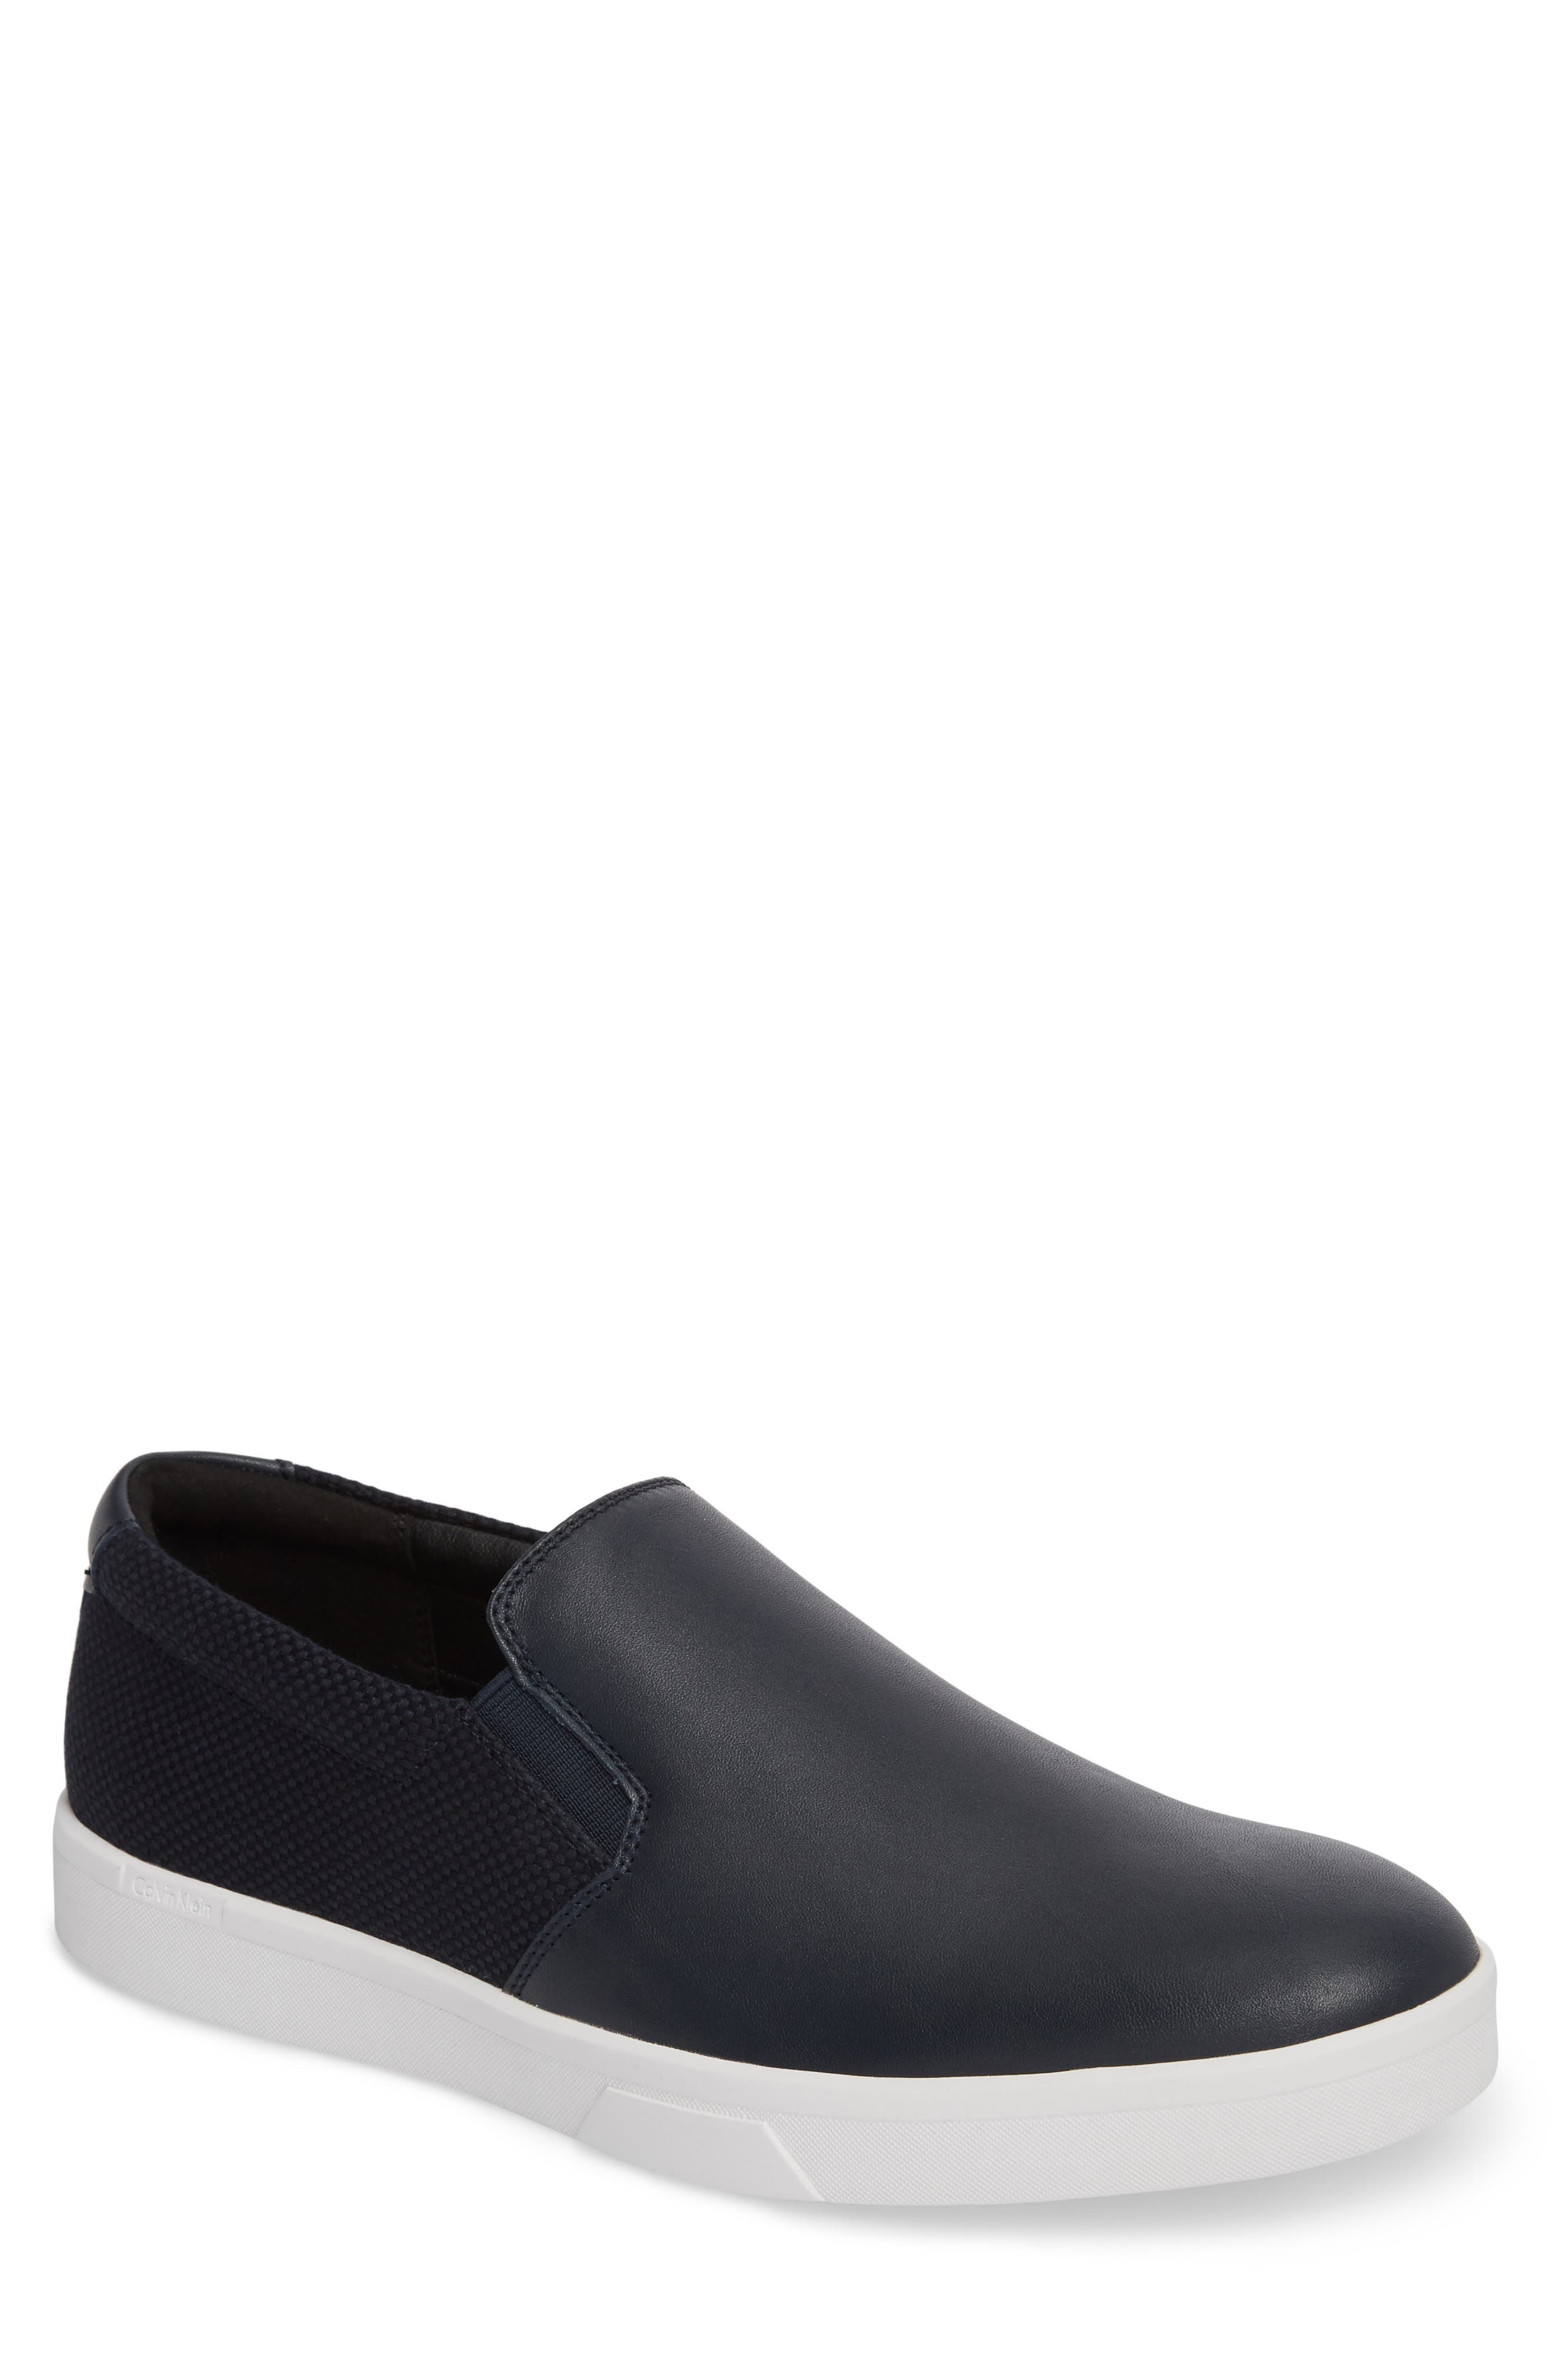 'Ivo' Slip-On,                         Main,                         color, Dark Navy Leather